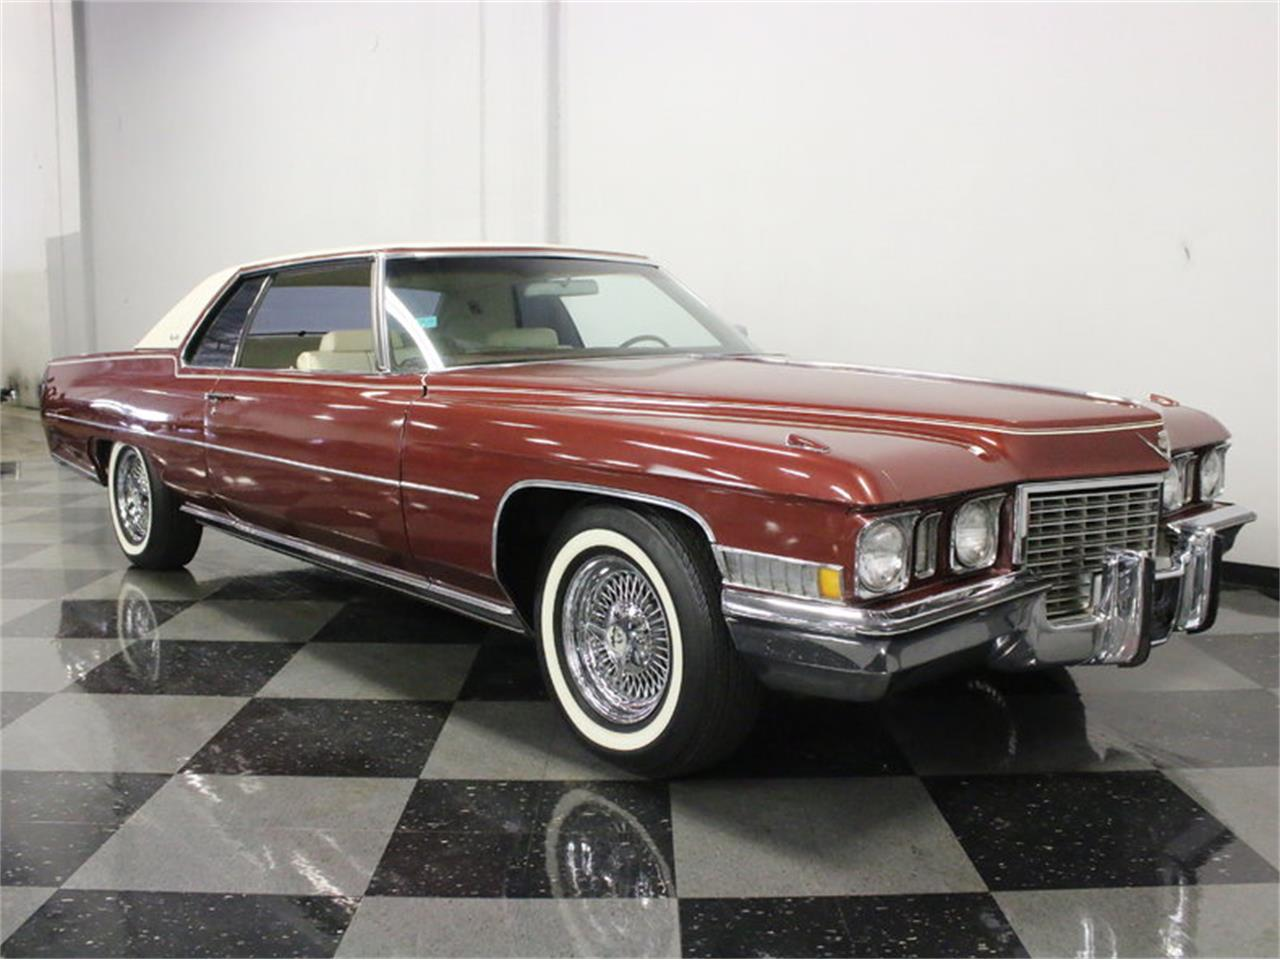 Large Picture of '72 Cadillac Coupe DeVille - $9,995.00 - L1A0